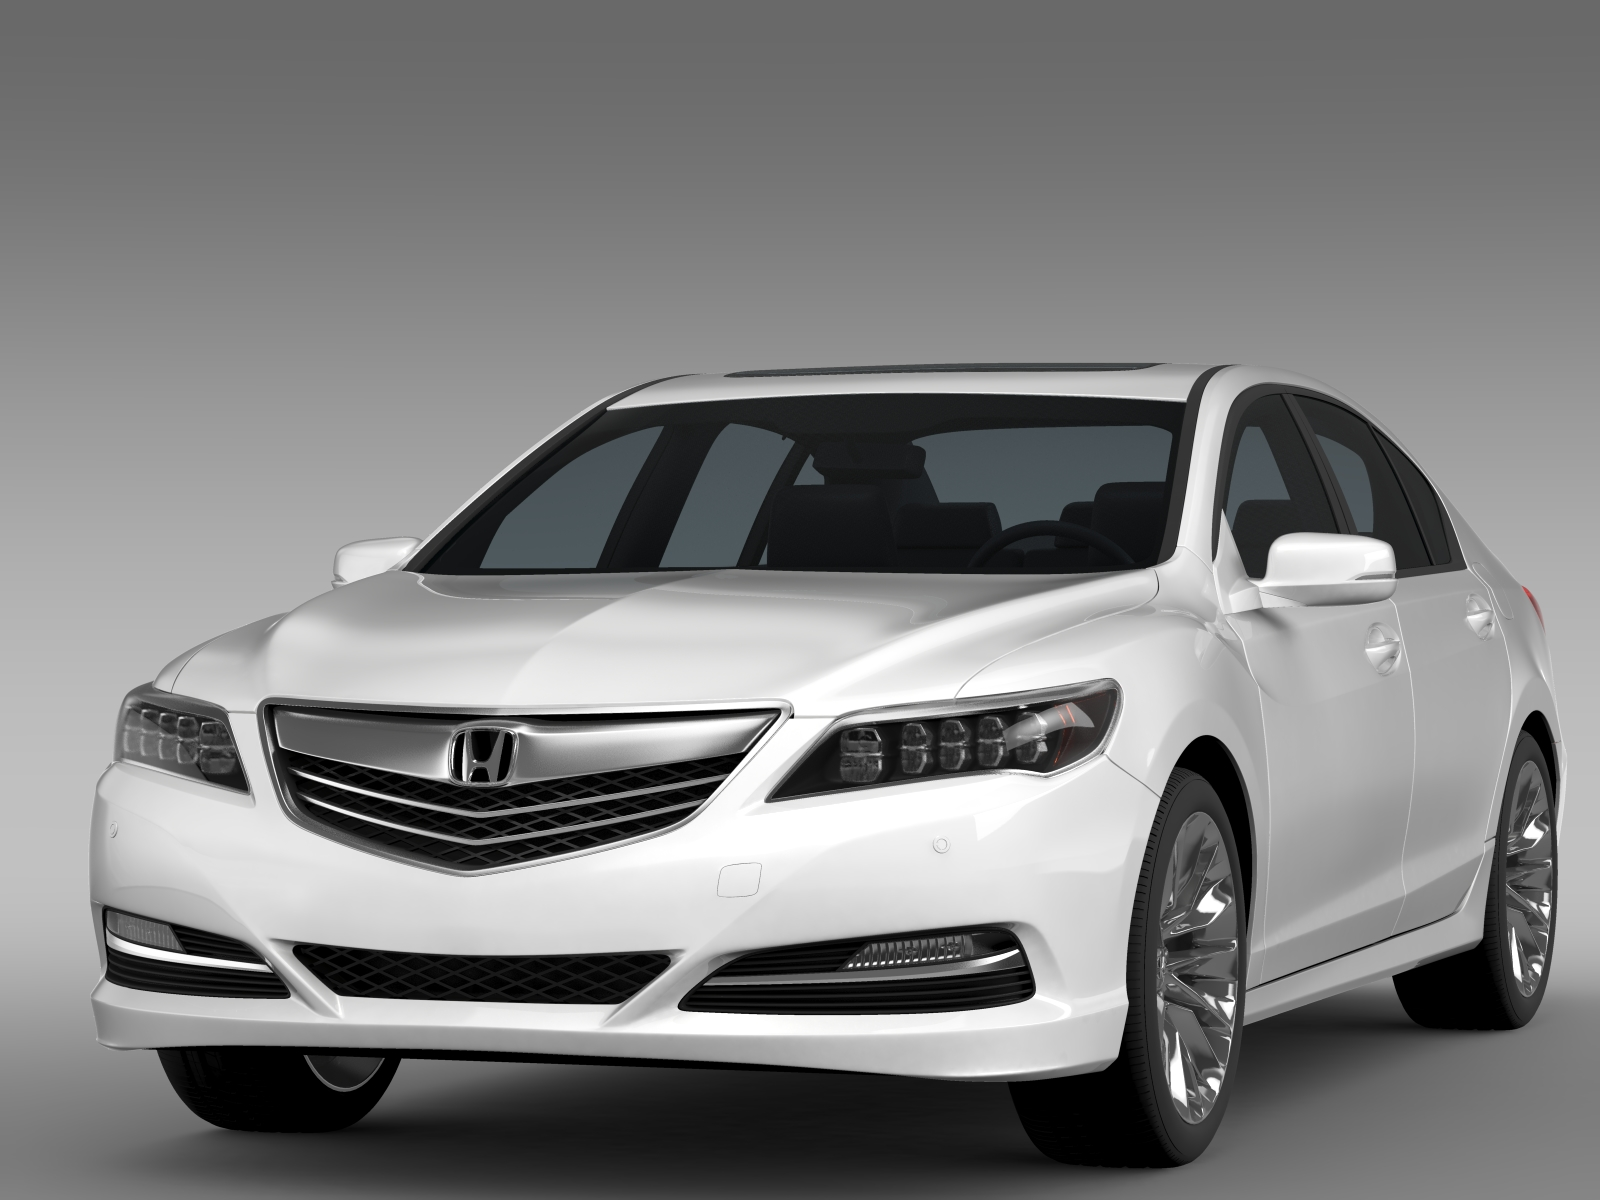 Honda Legend 2015 3d Model Buy Honda Legend 2015 3d